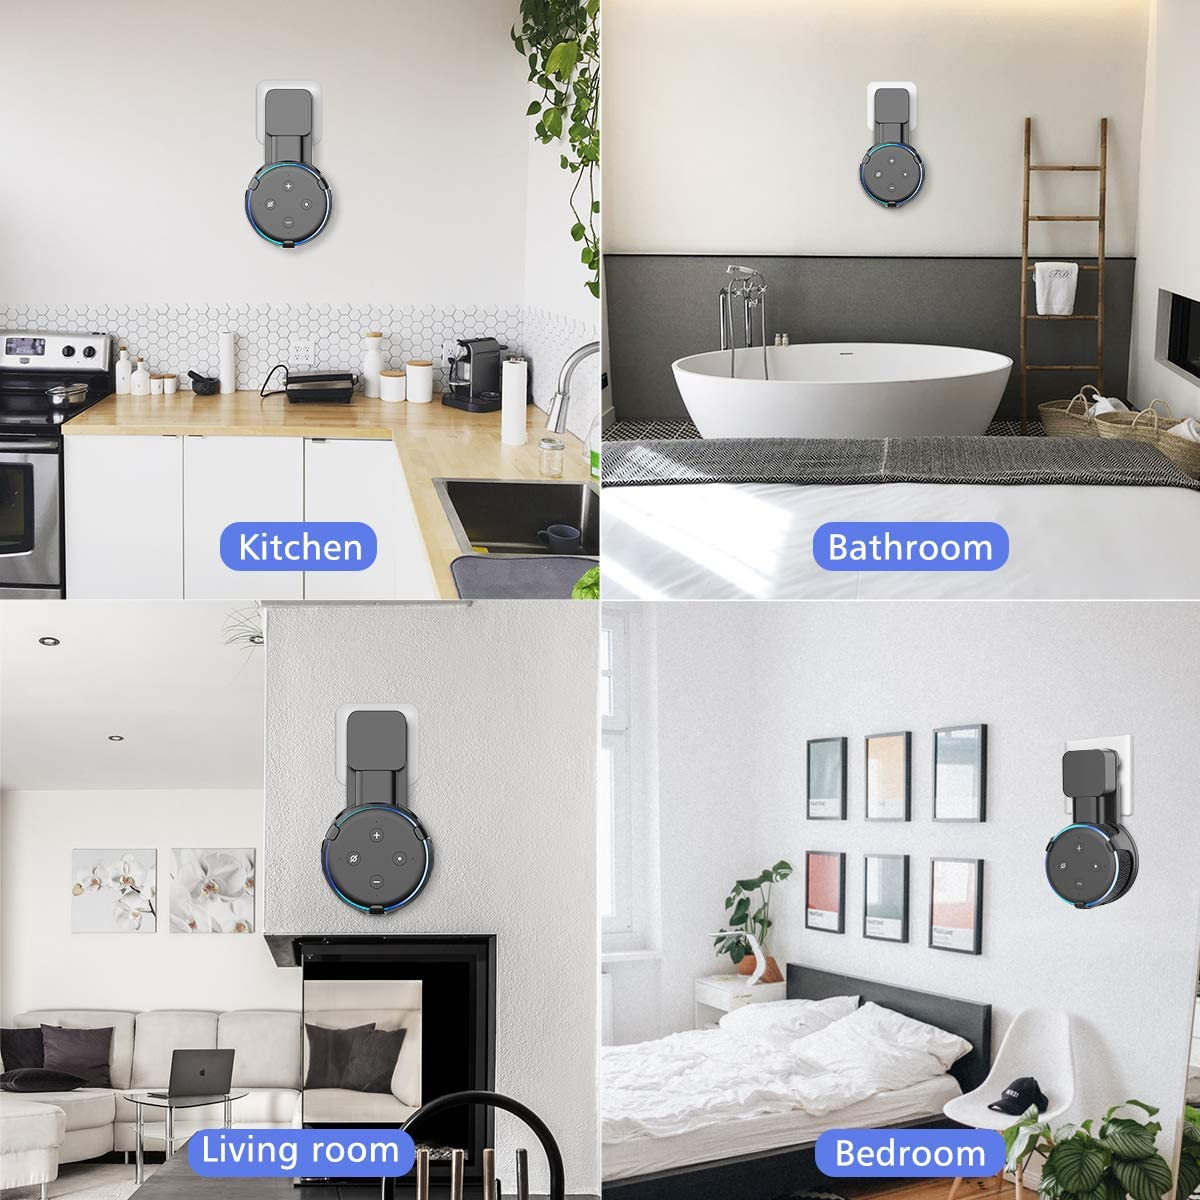 Outlet Wall Mount Holder Stand Hanger for Dot 3rd Gen,A Space-Saving Solution with Cord Management for Your Smart Home Speakers Hide Messy Wires Place on Kitchen Bedroom /& Bathroom(Set of 2 White)